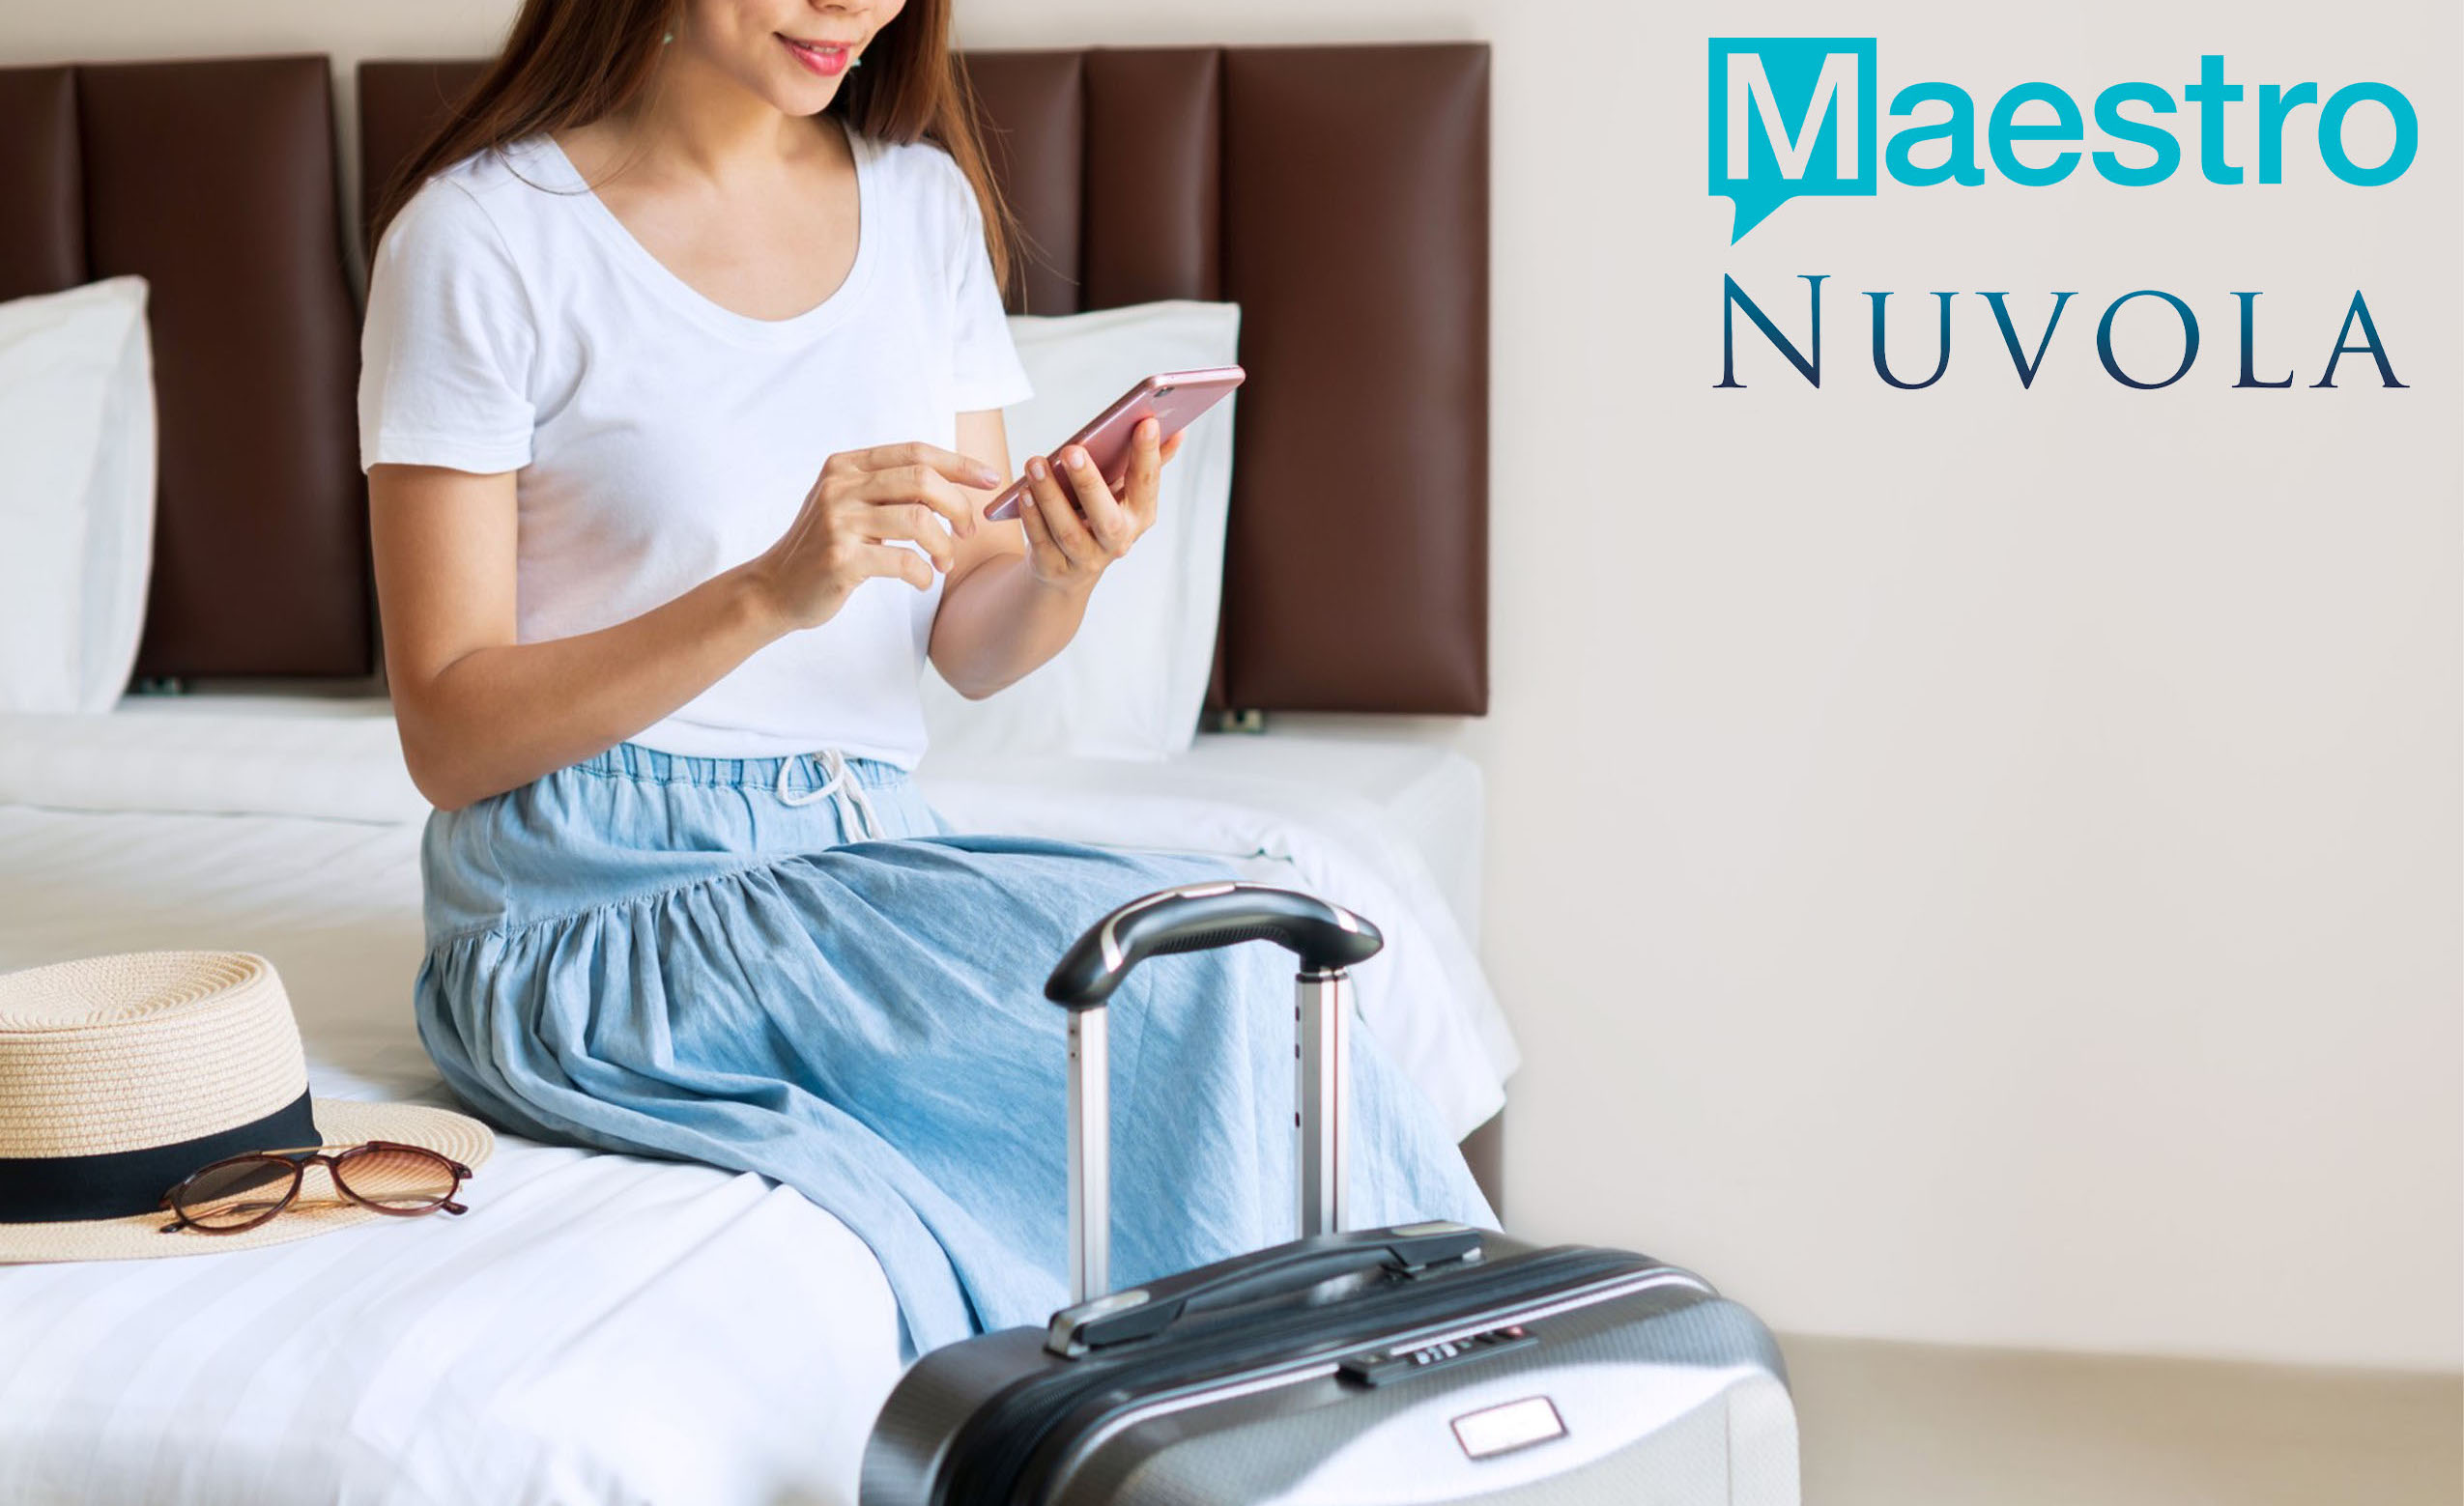 primgaug171 - Paramount Hospitality Management Enlists Nuvola and Maestro PMS Solutions - Innovative Property Management Software Solutions Powering Hotels, Resorts & Multi‑Property Groups.